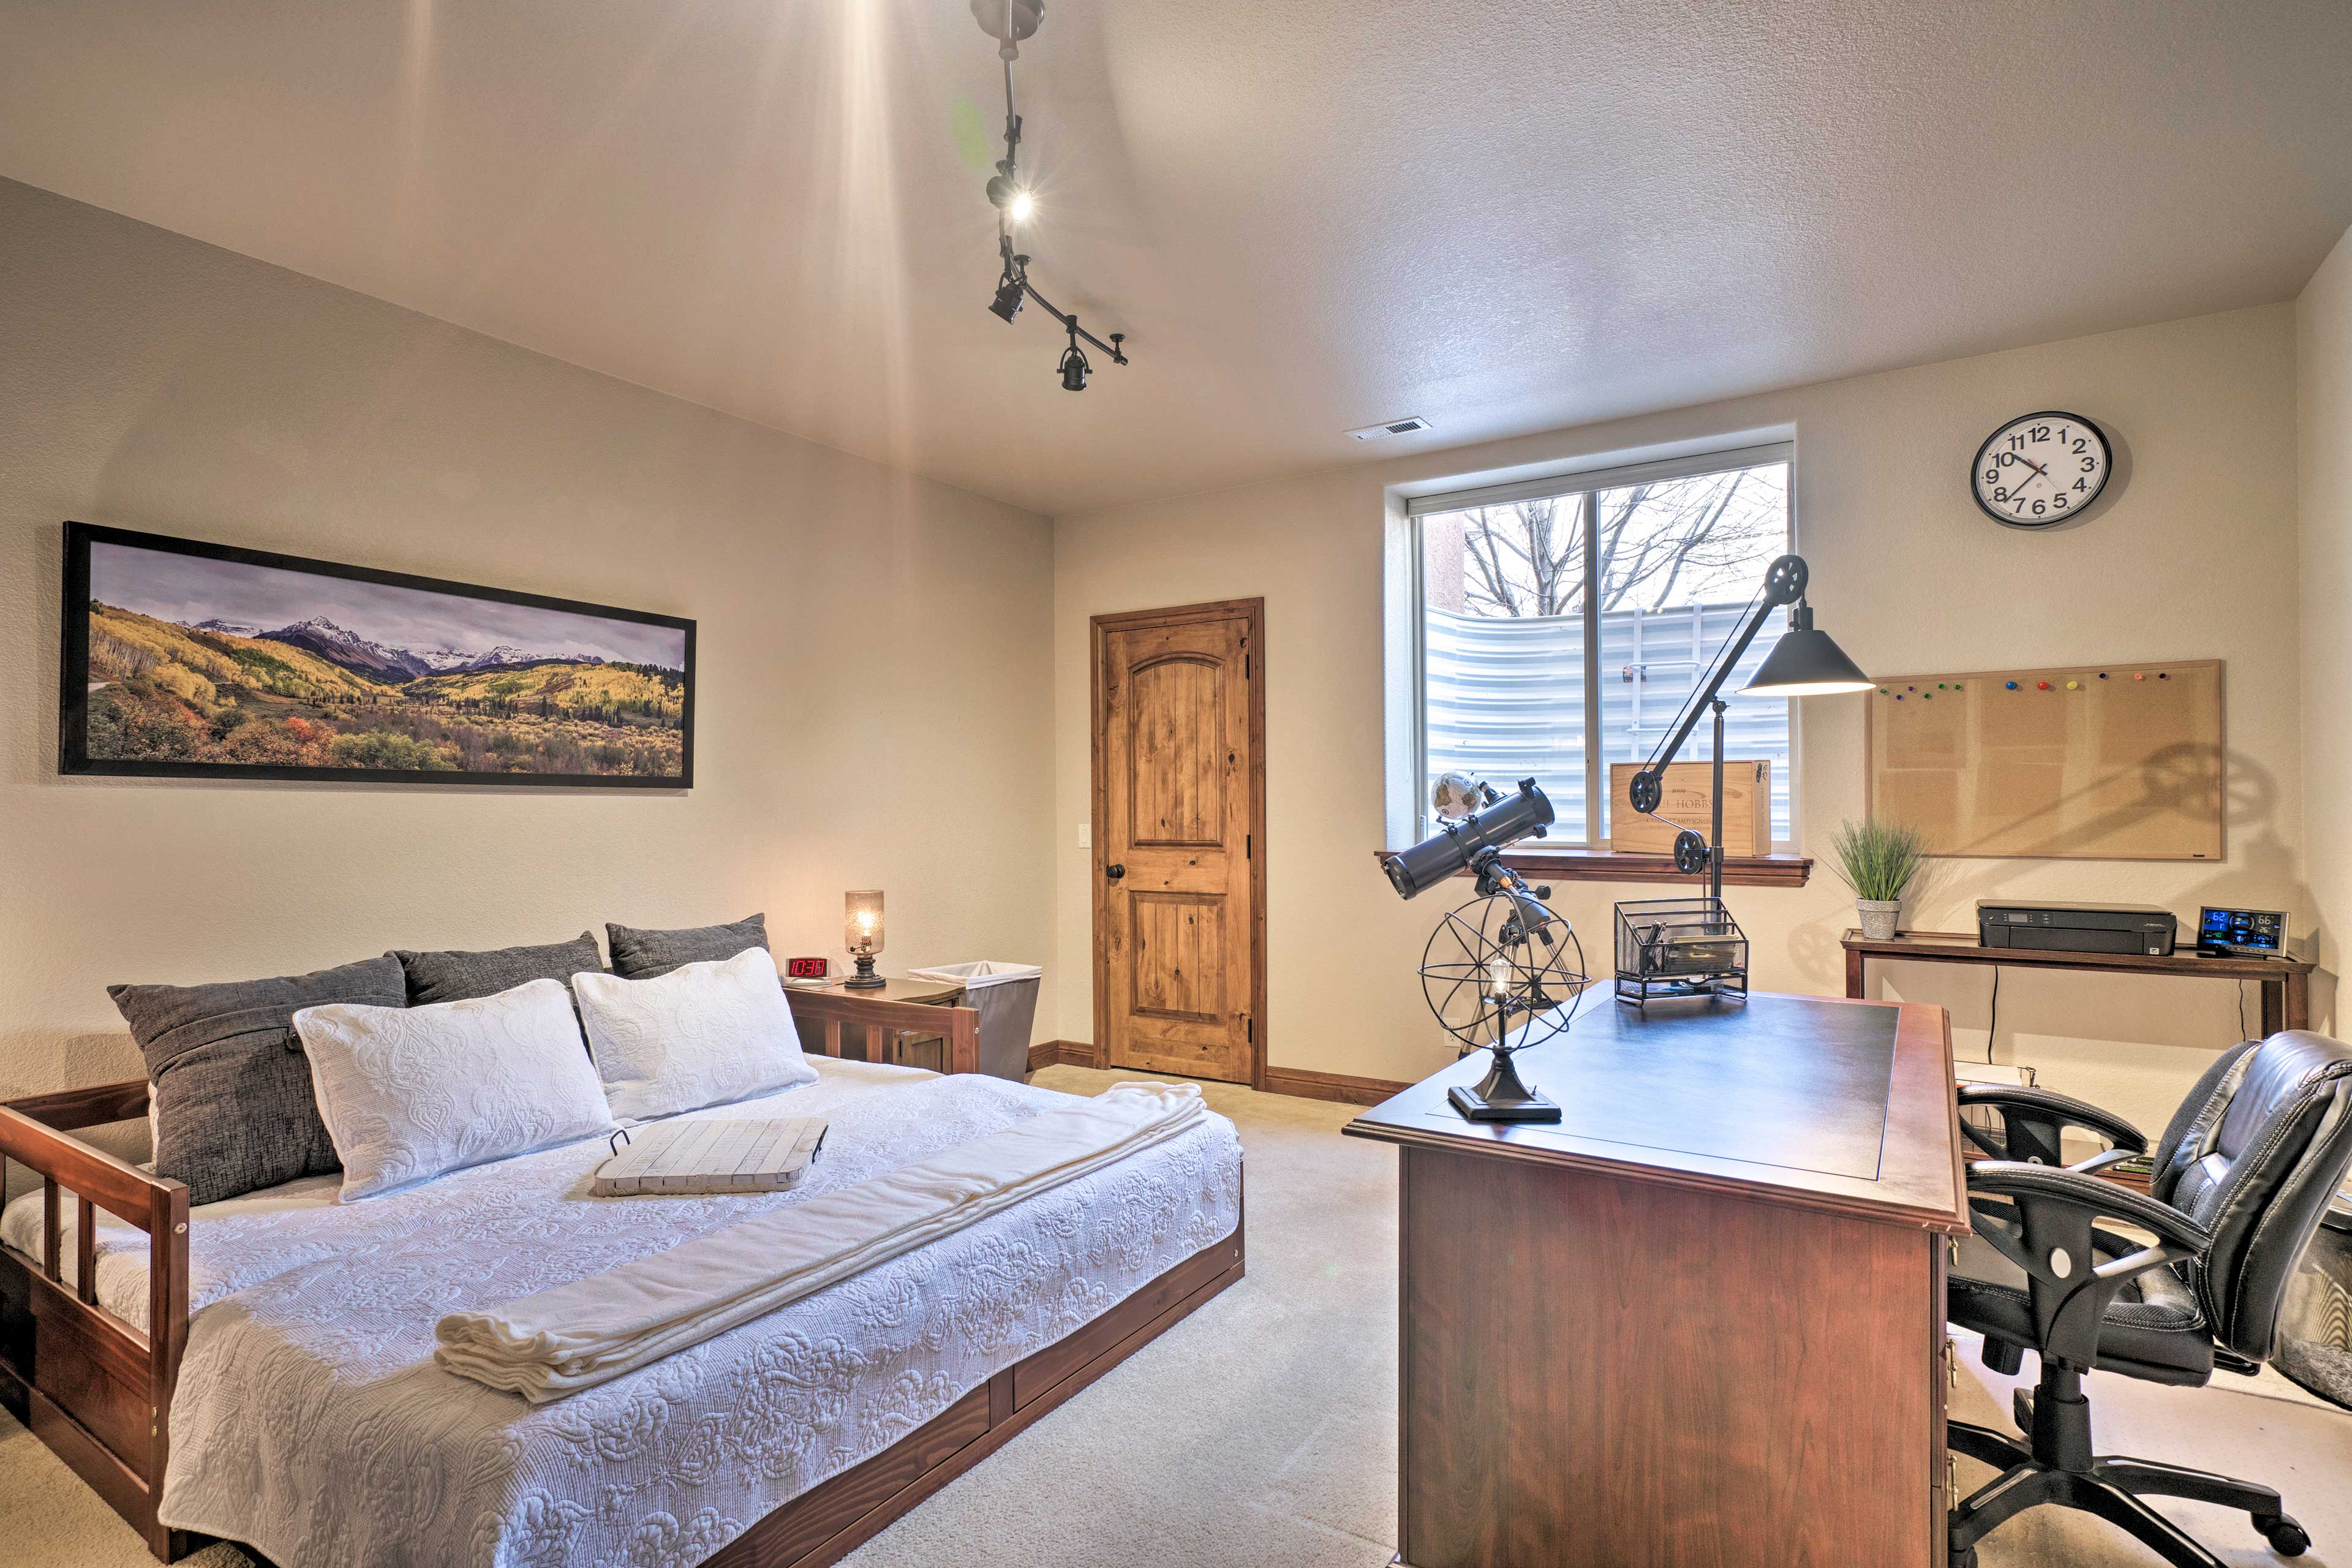 The 4th bedroom includes 2 twin beds that can convert into 1 king-sized bed.